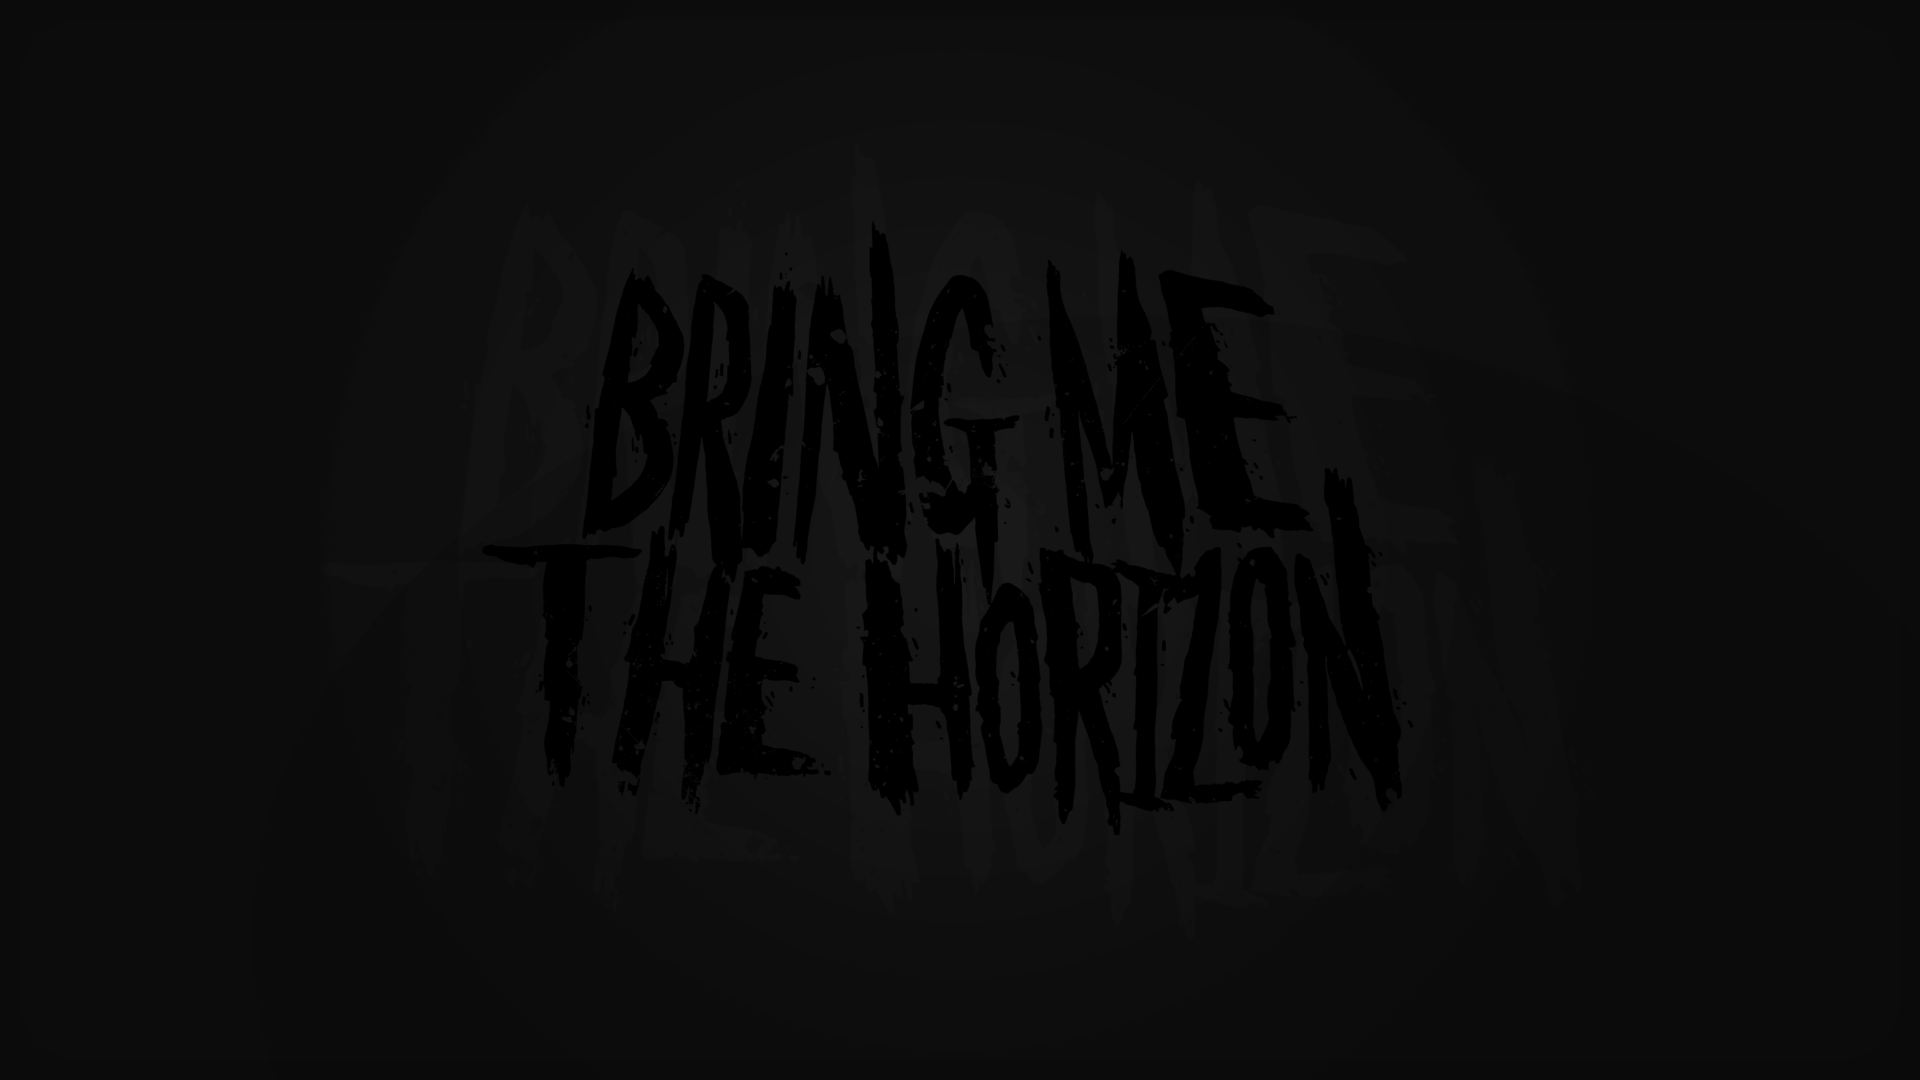 Bring Me The Horizon Wallpaper Posted By Zoey Simpson